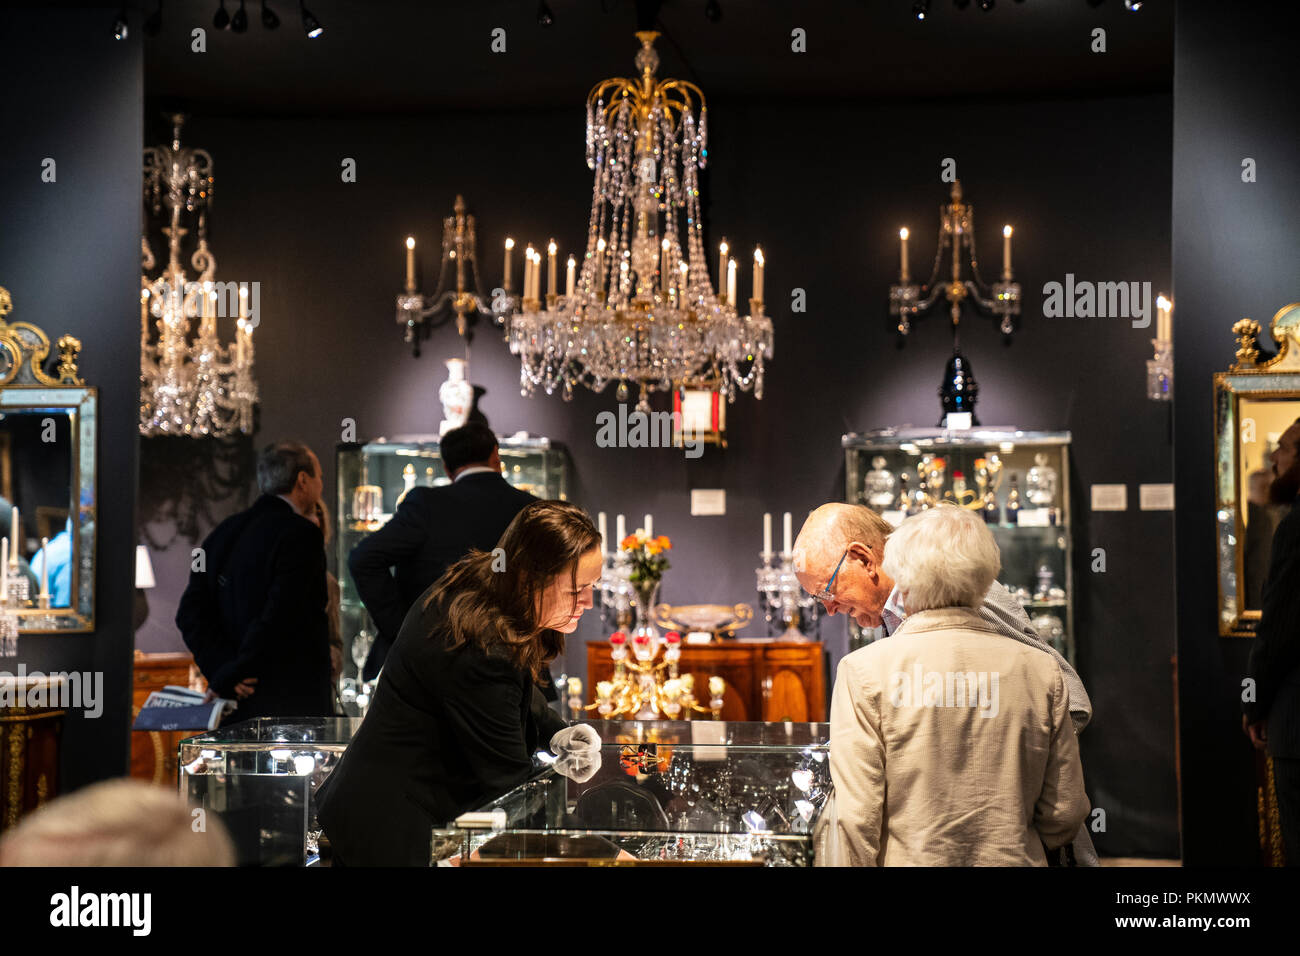 LONDON - SEPTEMBER 14: Visitors to the annual LAPADA Art and Antiques Fair which opened today, September 14, 2018,  in Berkeley Square, London. Over 100 exhibitors present work from across the art, antiques, design and decorative arts spectrum. The Fair runs from September 14-19, 2018. Photo by David Levenson/Alamy Live news - Stock Image